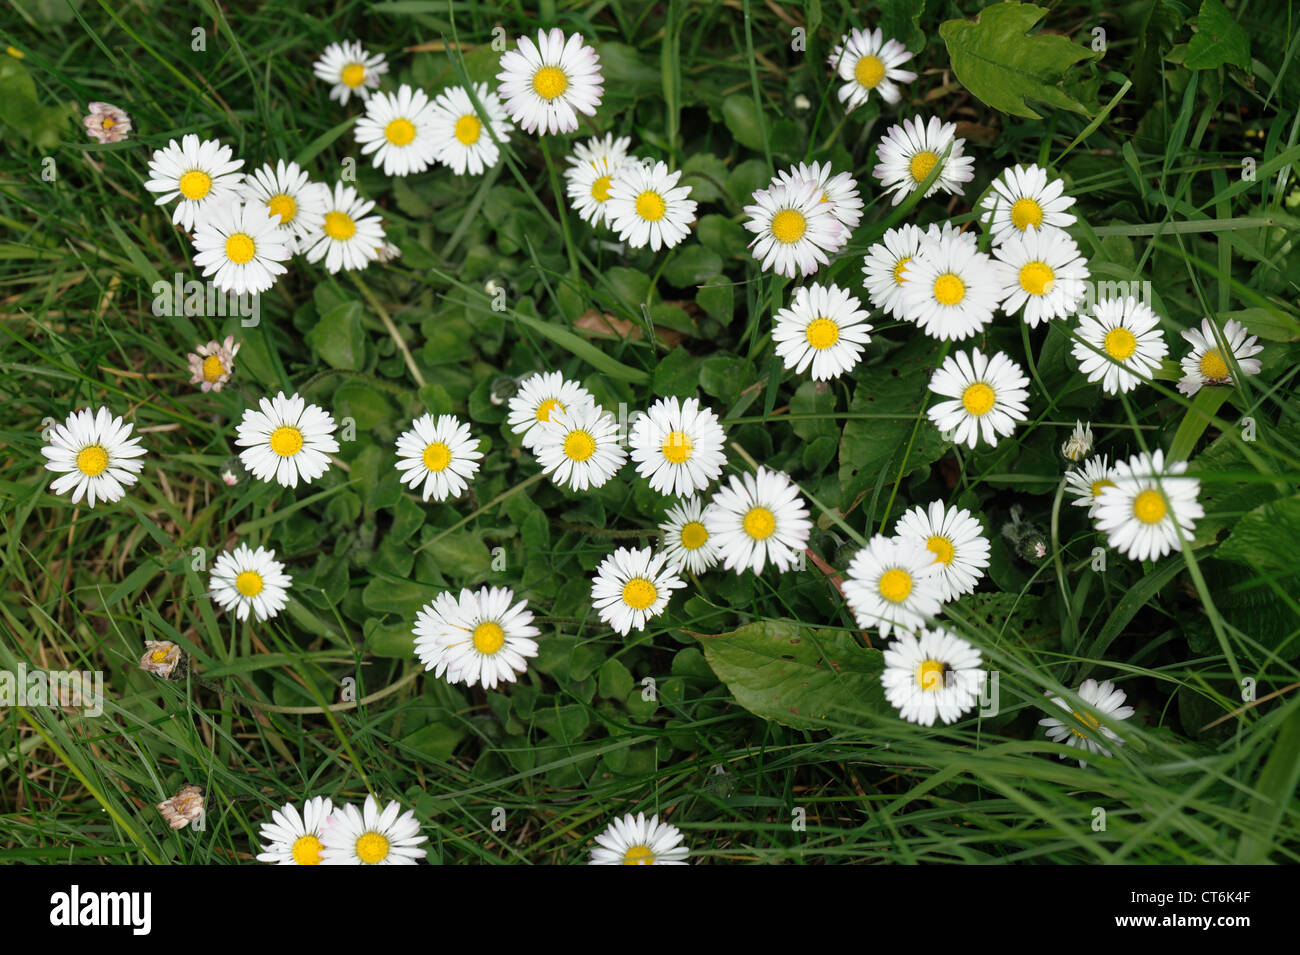 Flowering daisy (Bellis perennis) flowering in a garden lawn - Stock Image